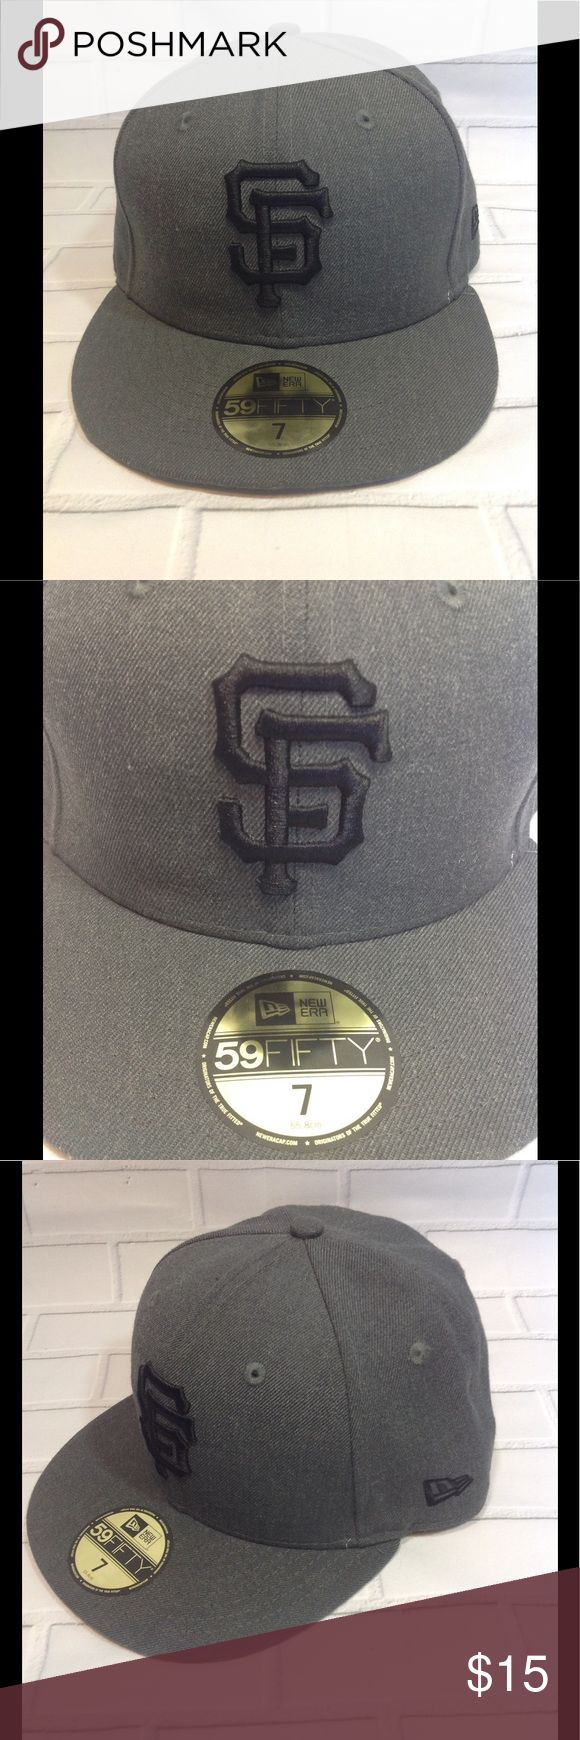 New Era 59FIFTY SF Giants Fitted Flatbrim Hat sz 7 Like New. Unworn. Authentic MLB Fan Store Merchandise. Size: 7 (55.8cm) Color: charcoal grey. I ship the same day. New Era Accessories Hats